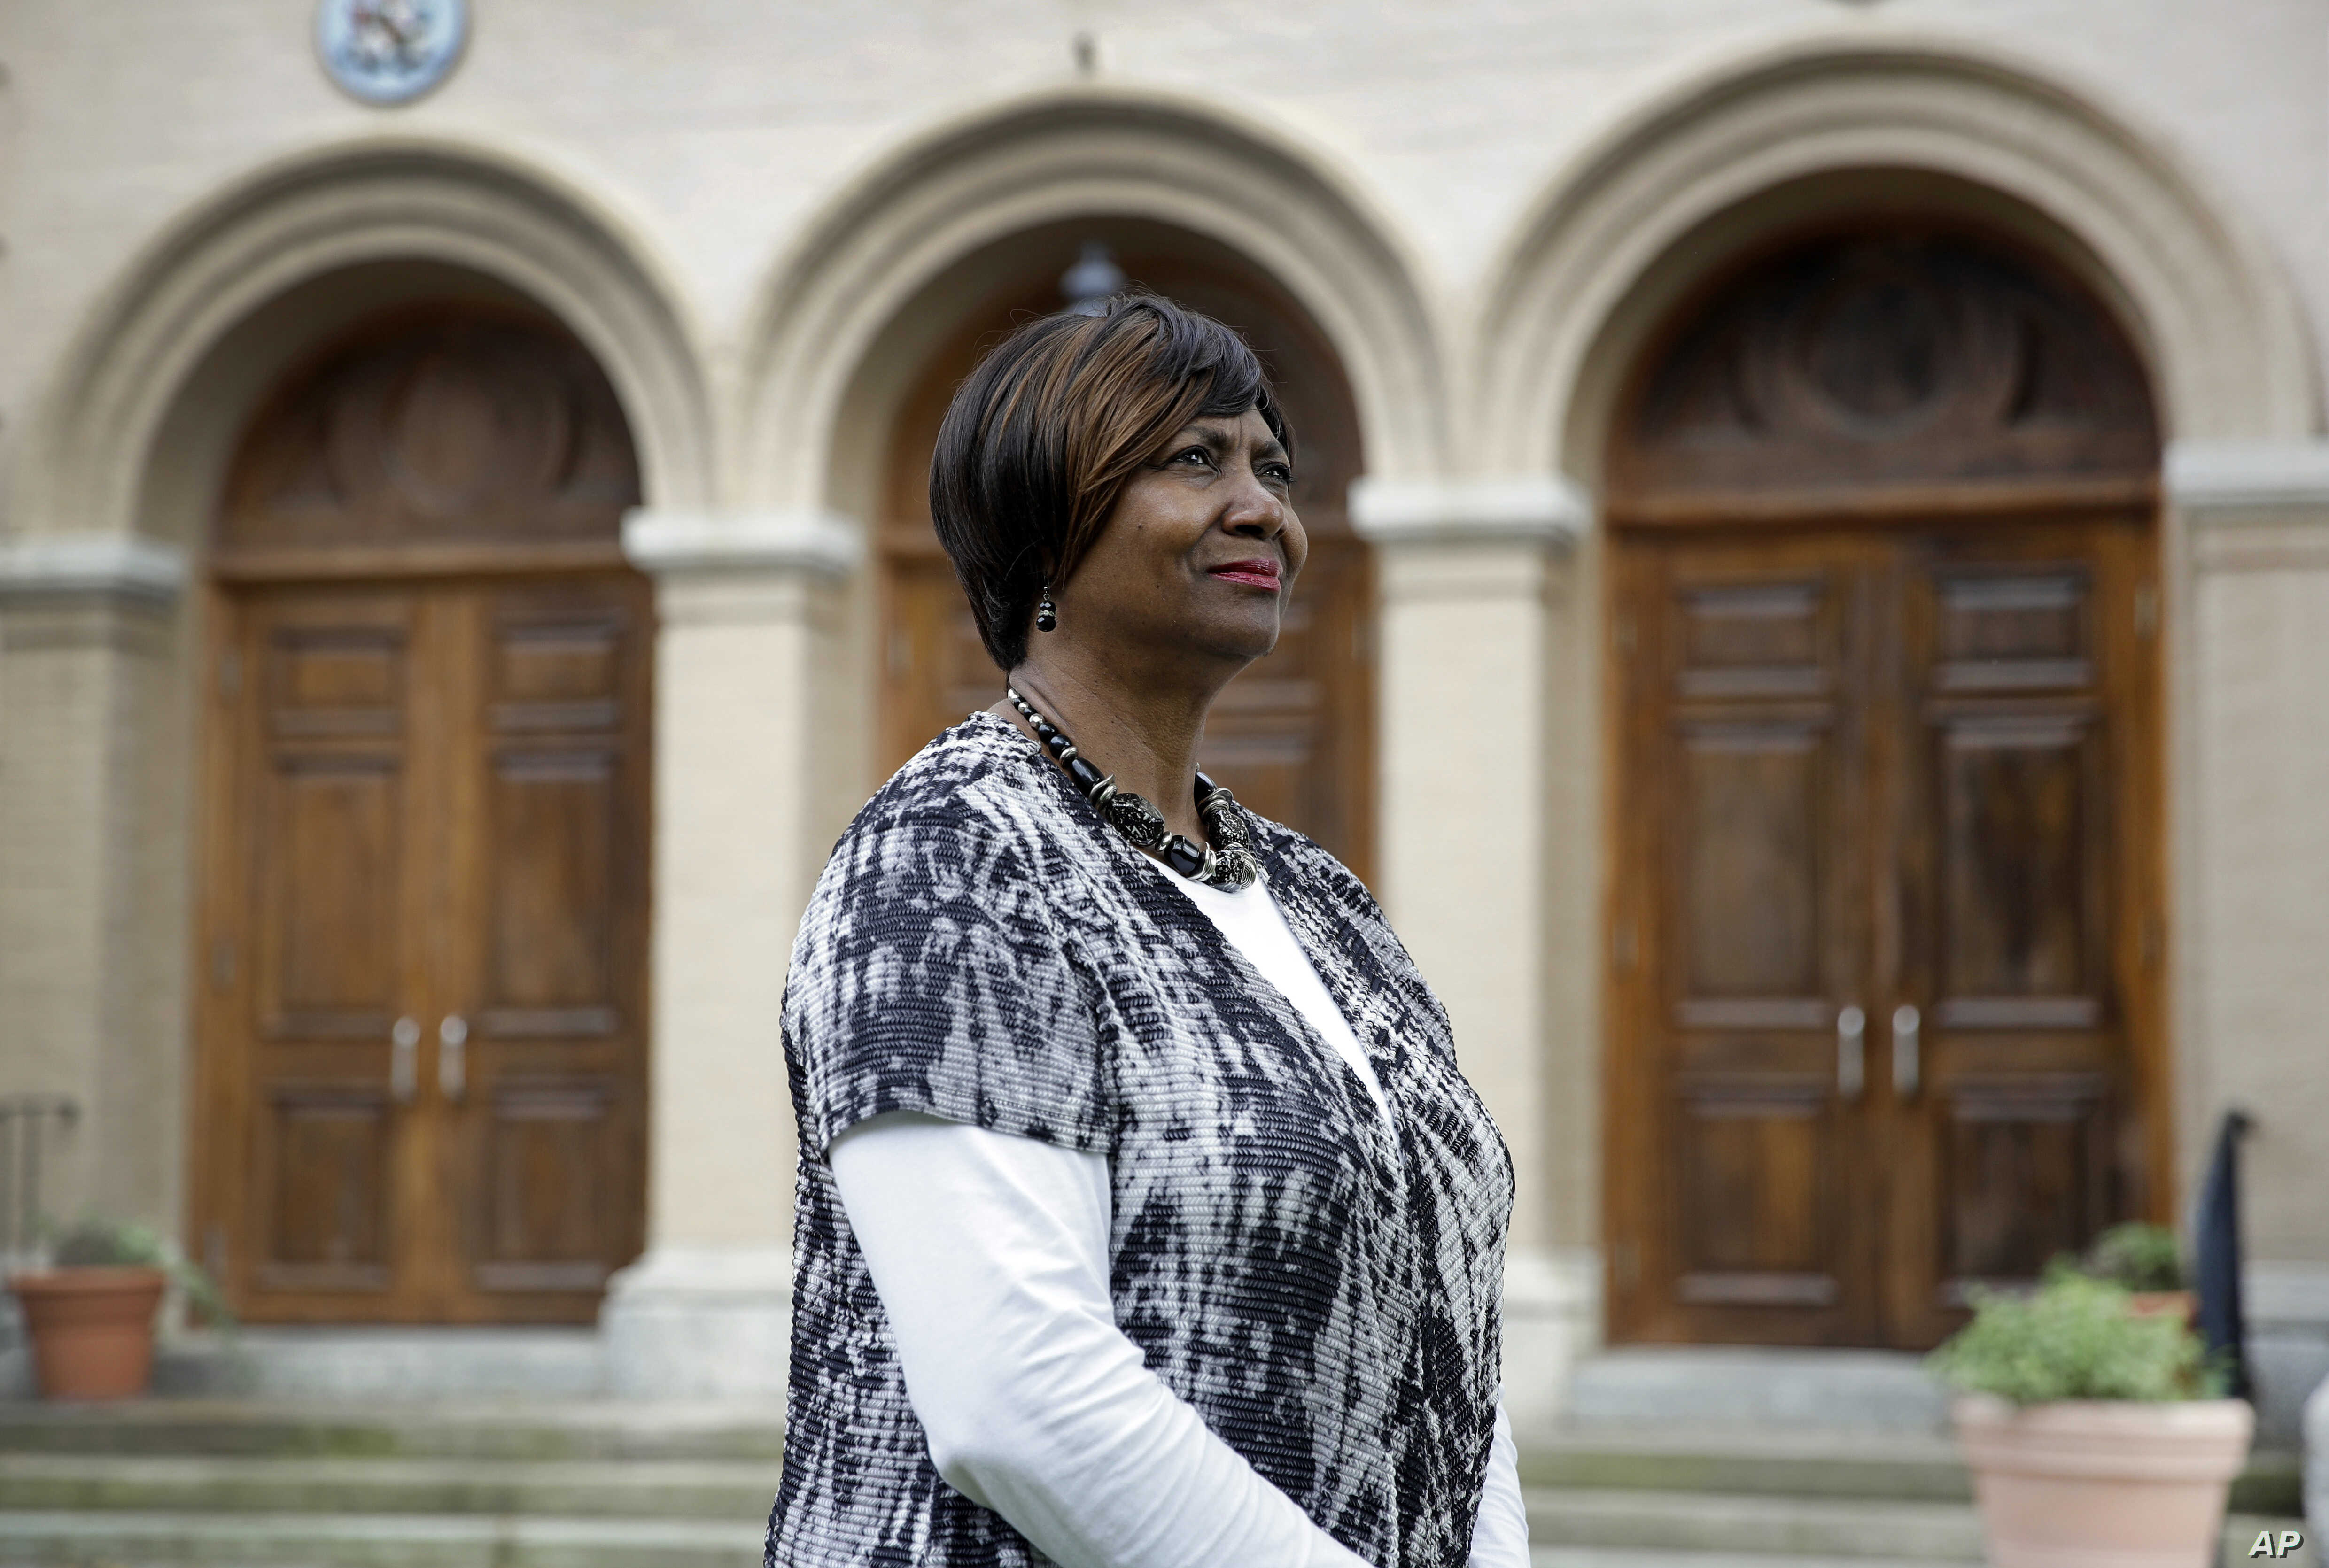 Mayor Victoria Jackson-Stanley poses for a photograph outside the Dorchester County Courthouse in Cambridge, Maryland, a stop on the Harriet Tubman Underground Railroad Byway, May 25, 2017.